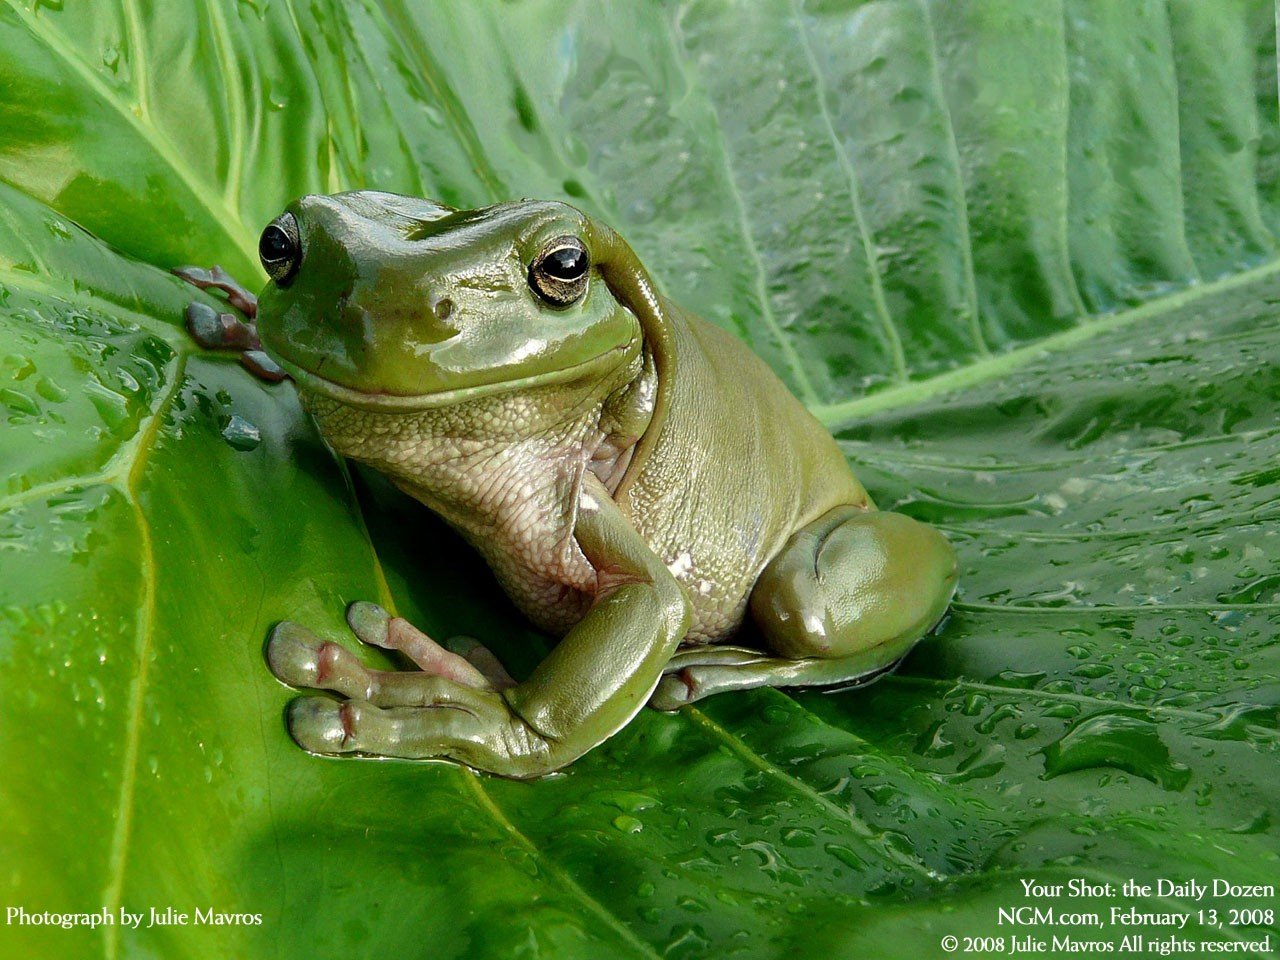 Cute Little Frogs In Photos | Funny And Cute Animals